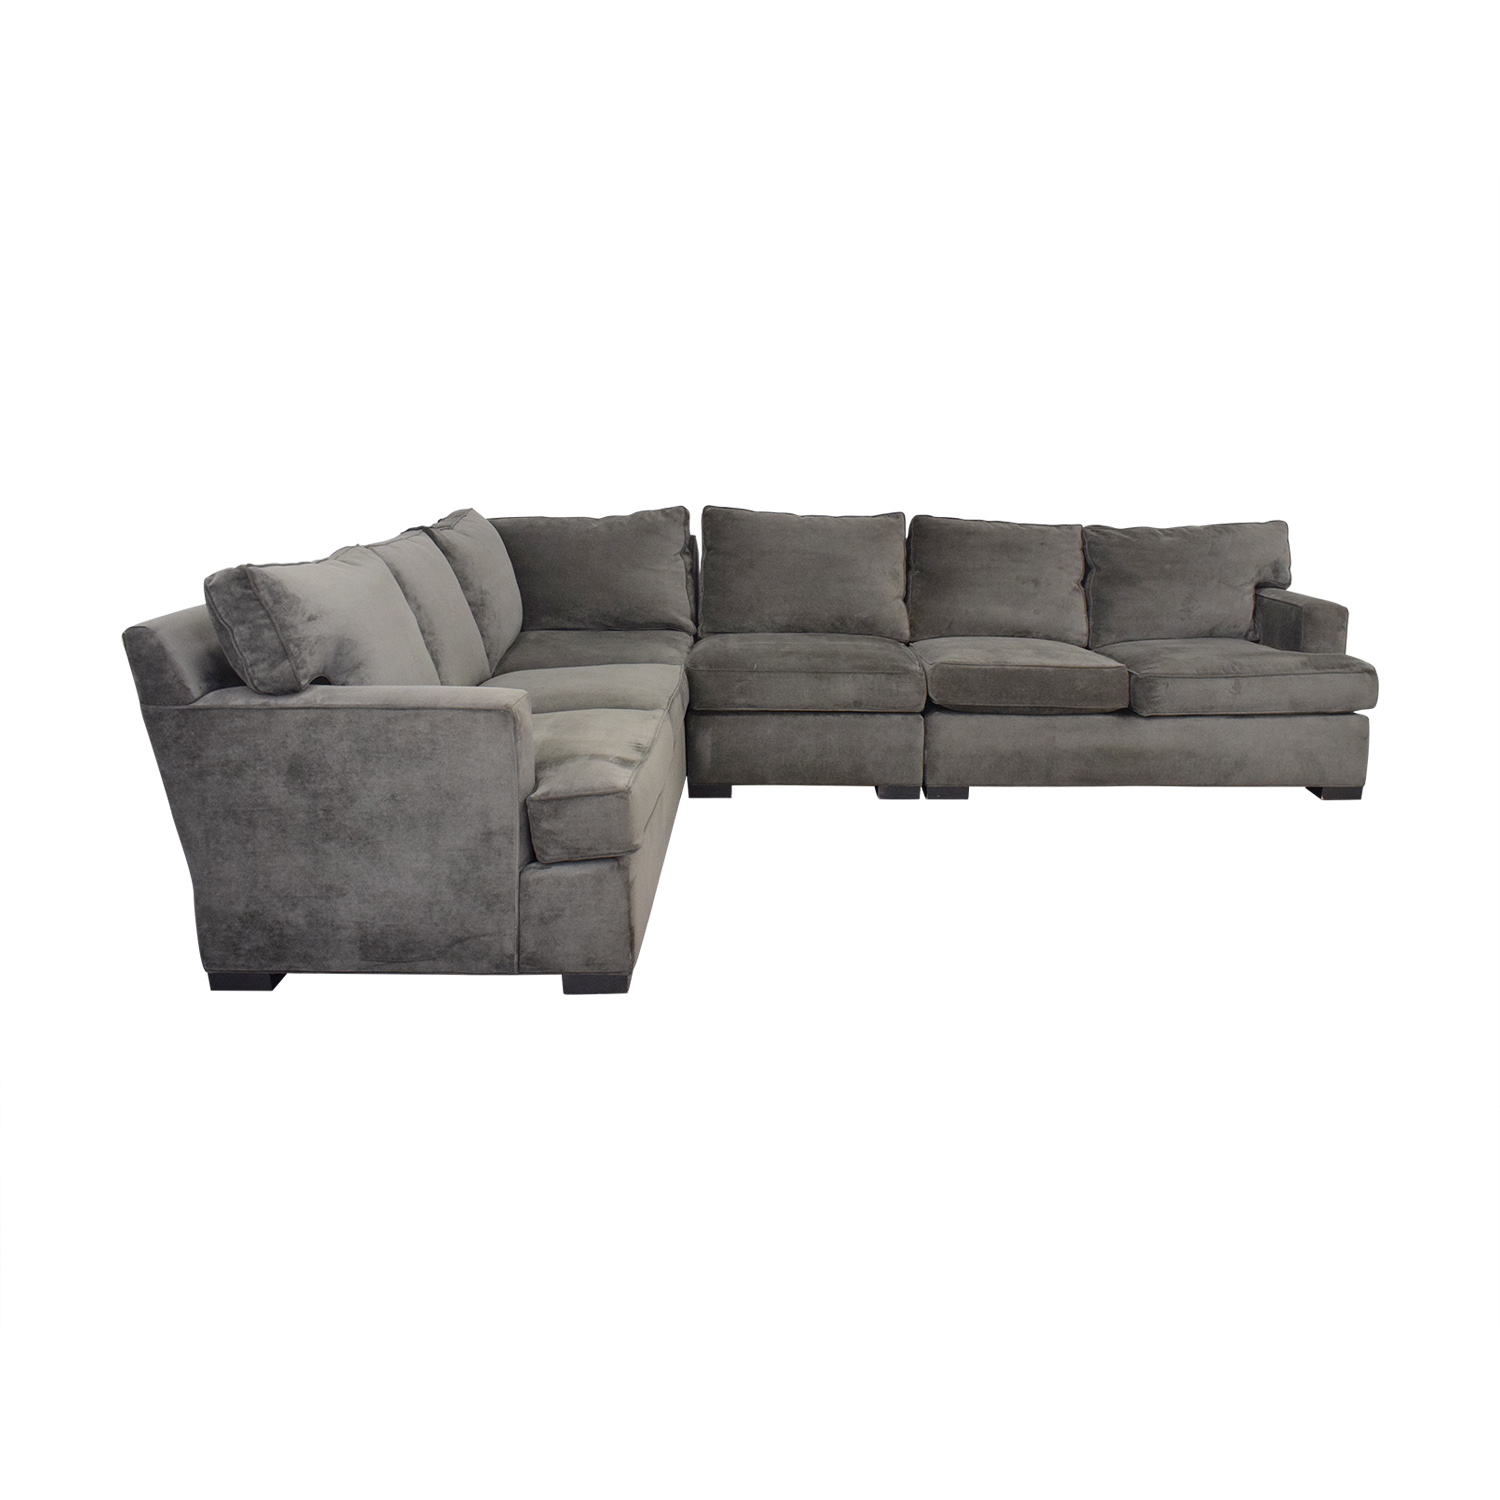 buy Arhaus Dune Sectional Sofa Arhaus